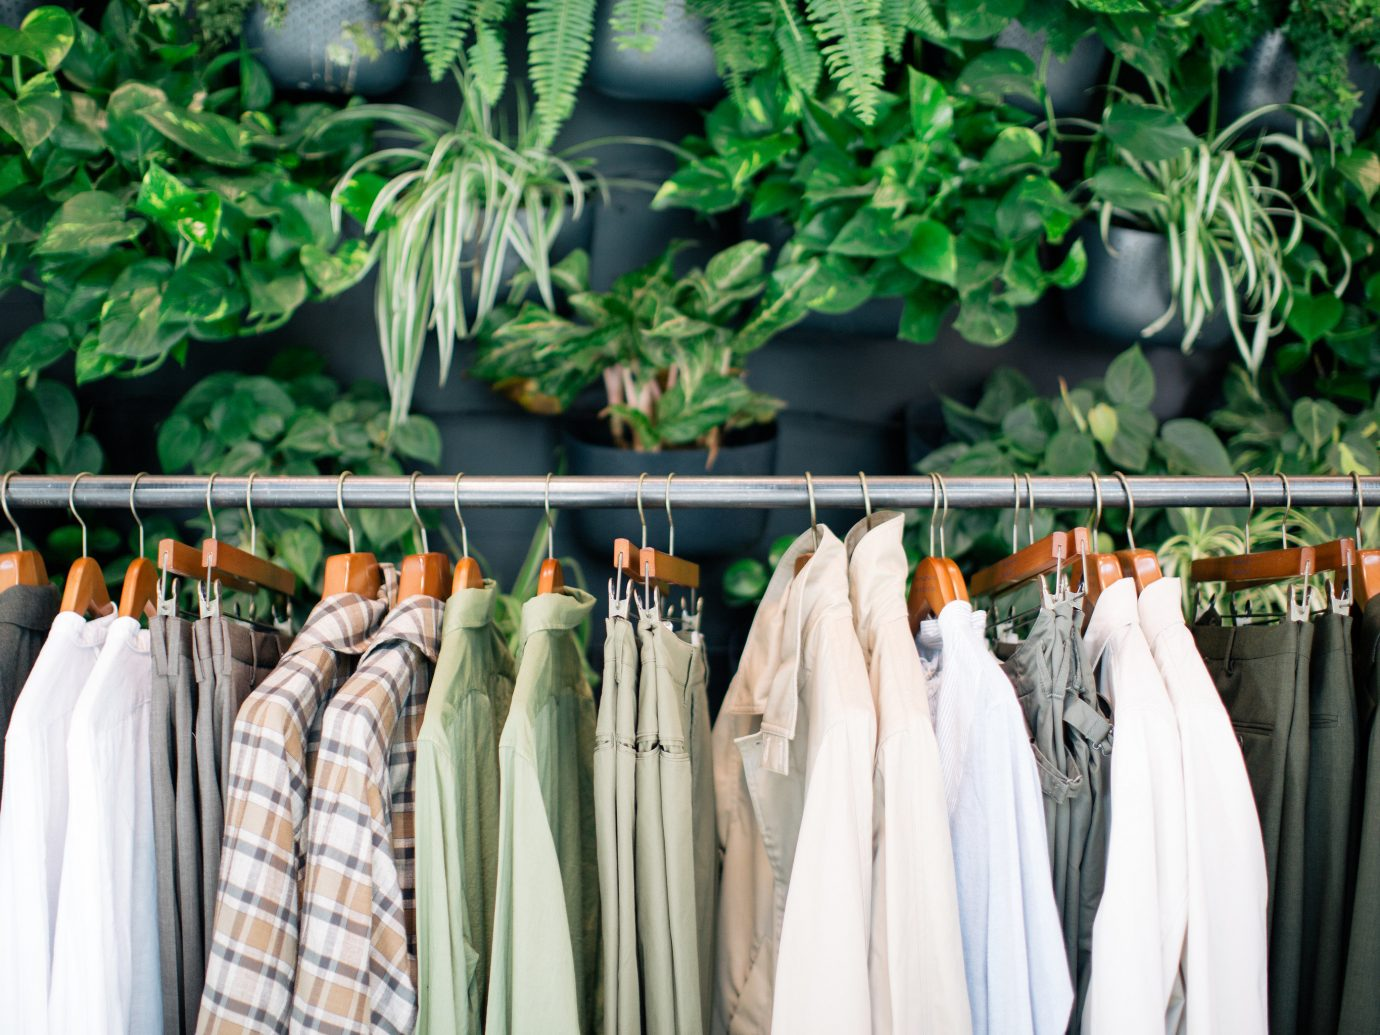 Arts + Culture Hotels Jetsetter Guides shopping Travel Trends Trip Ideas hanging produce group bunch rack row different arranged line several closet